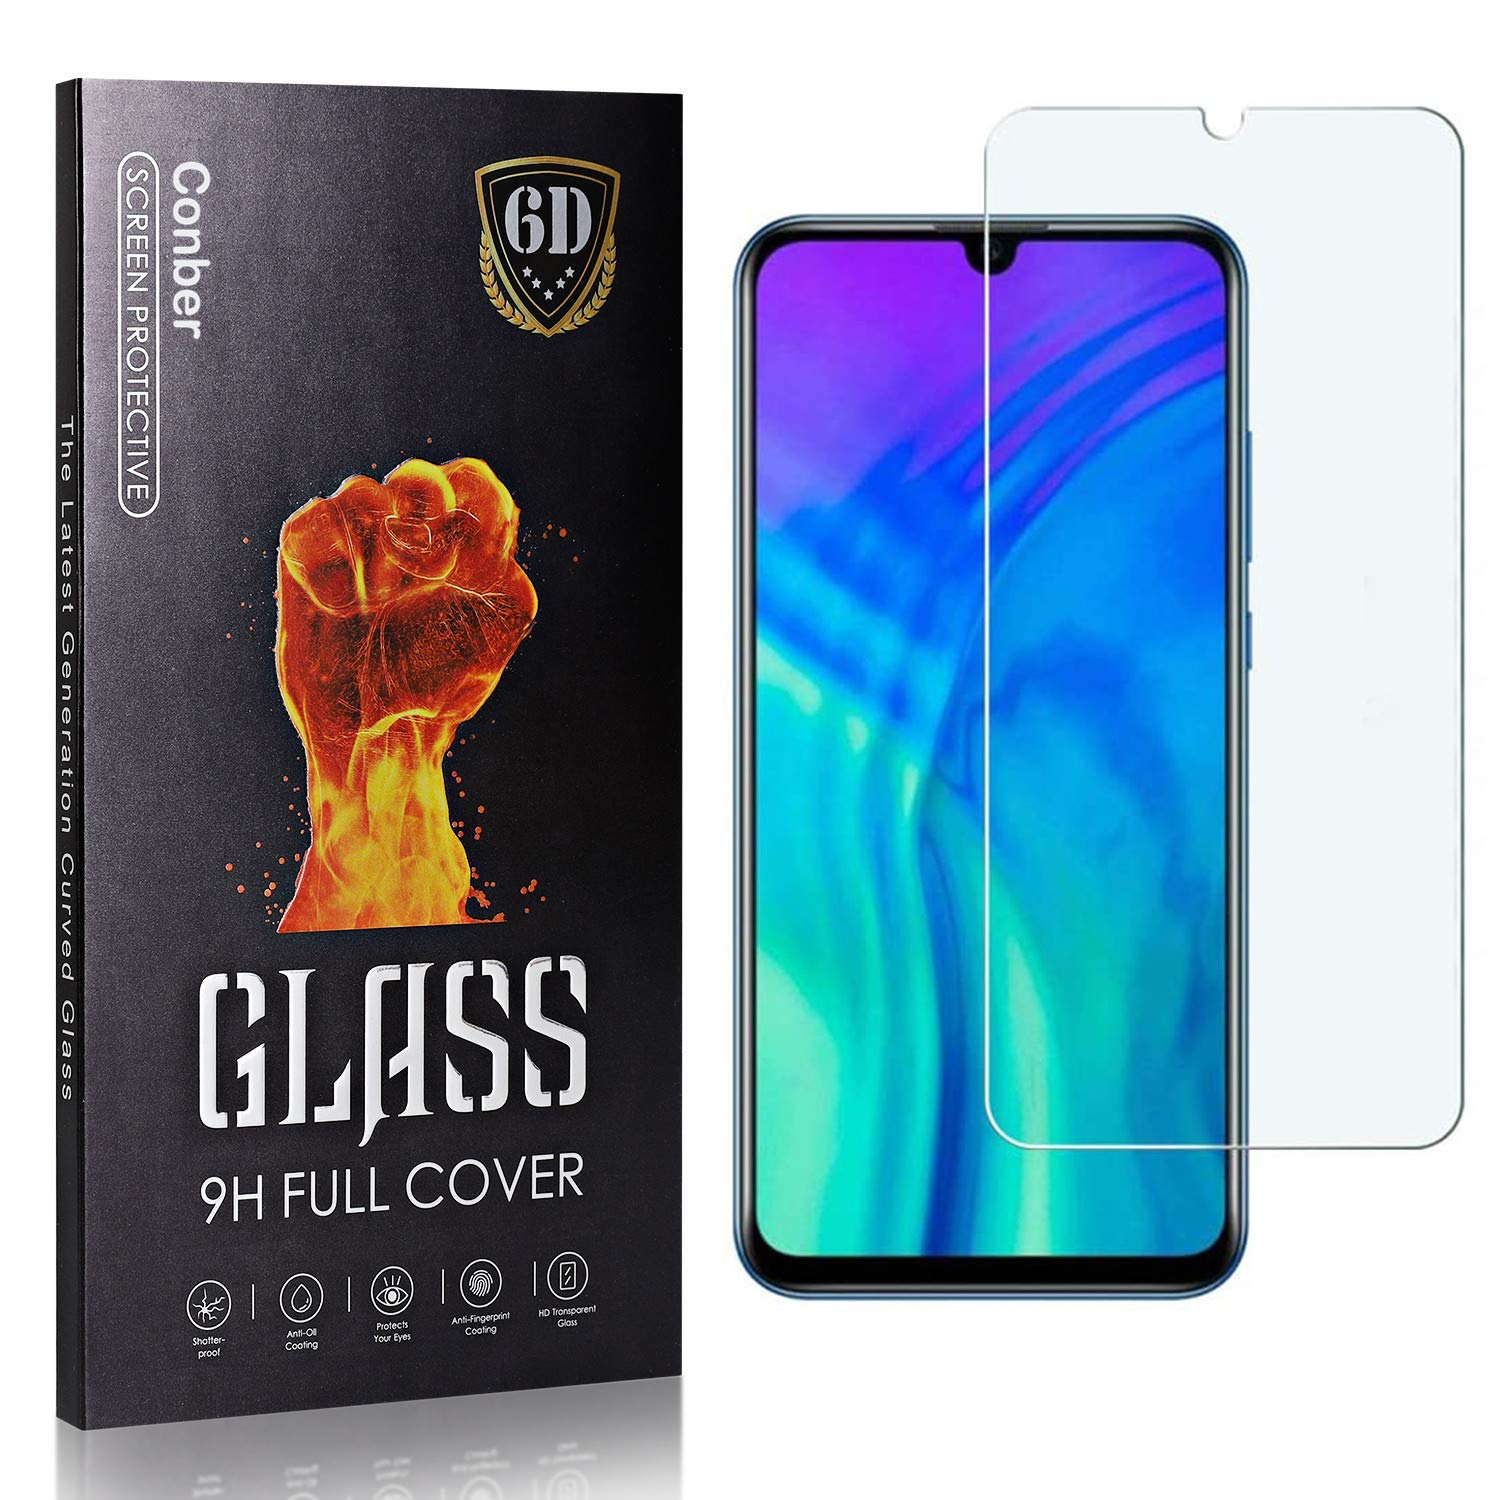 Conber 1 Pack Screen Protector for Honor Lite Under Max 84% OFF blast sales 20 Tempe Huawei